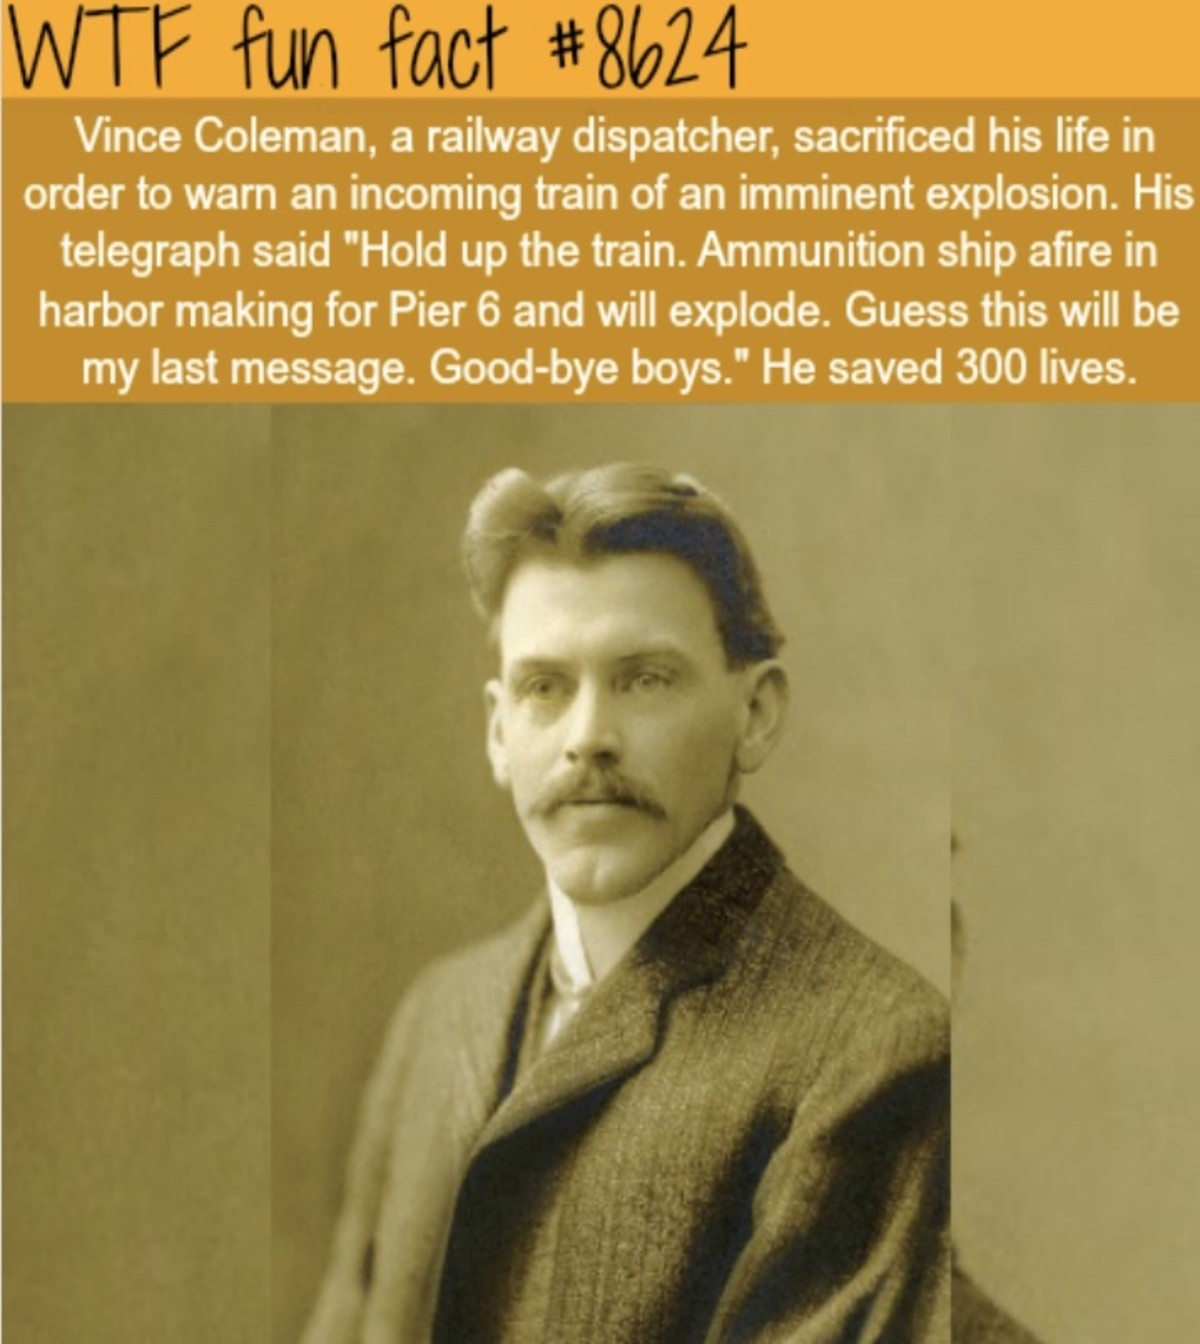 Vince Coleman. .. More specifically, Mr. Coleman worked for the Canadian Government Railways company during WW1. He died in the Halifax explosion which, for those who don't know,